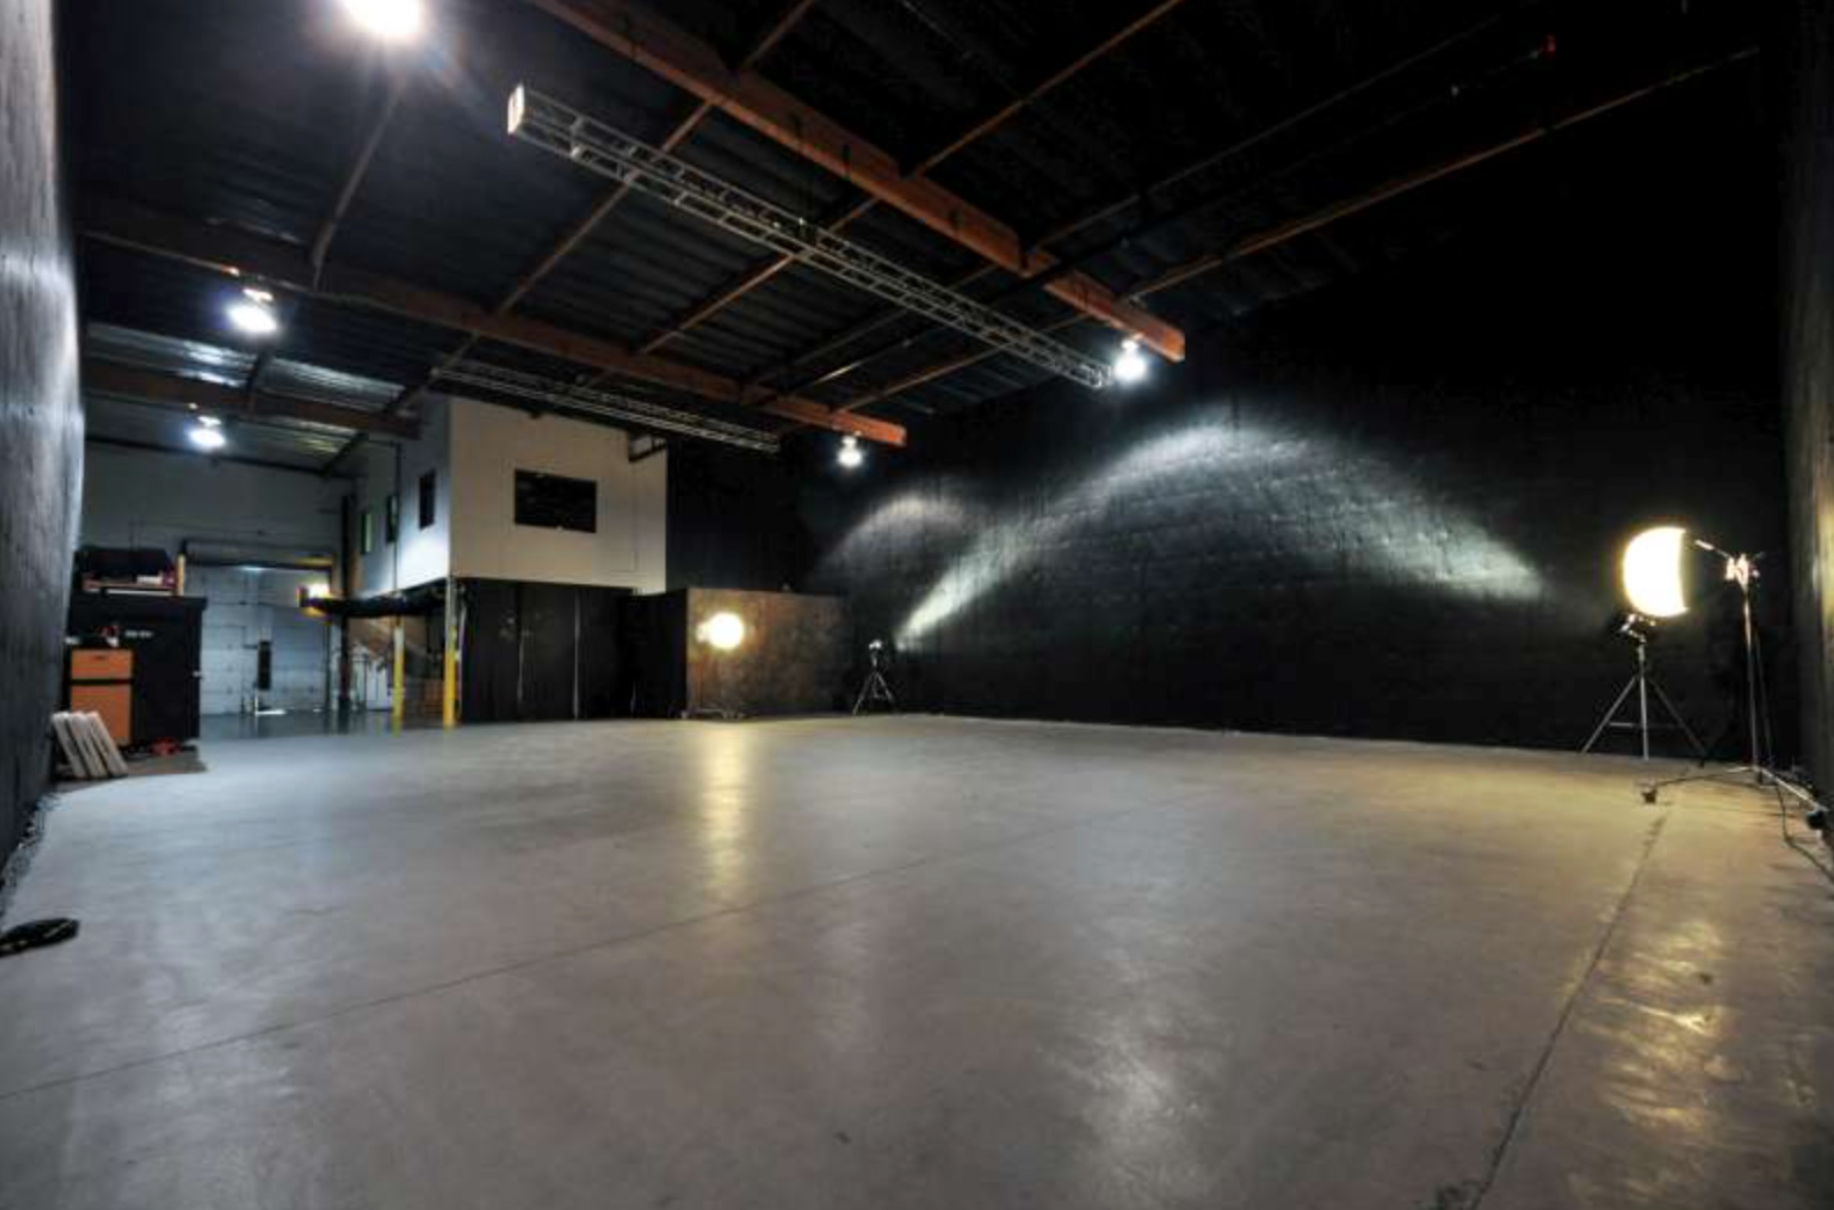 Soundstage with Roof and City View Access: Production Rental facility.  Sound proof, 20 ft. ceilings, 200 amps, stage lights, elephant doors, projector and sound system, flats for set building, 28x28 wooden dance floor, portable outside generator.  2 Floors. All rooms can be used, except office.